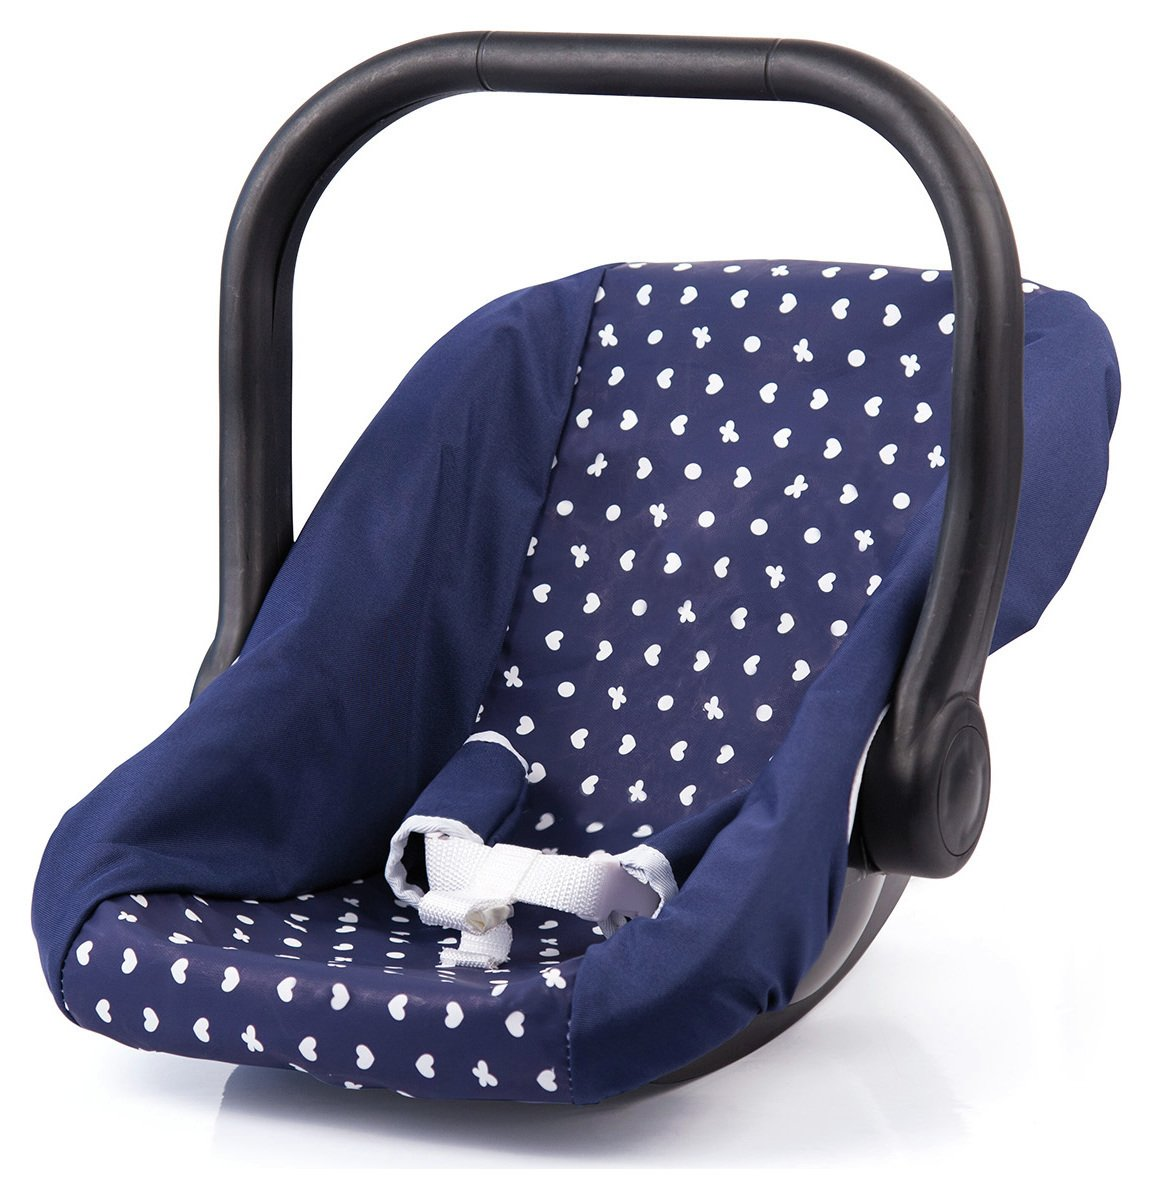 Image of Bayer Car Seat For Dolls.